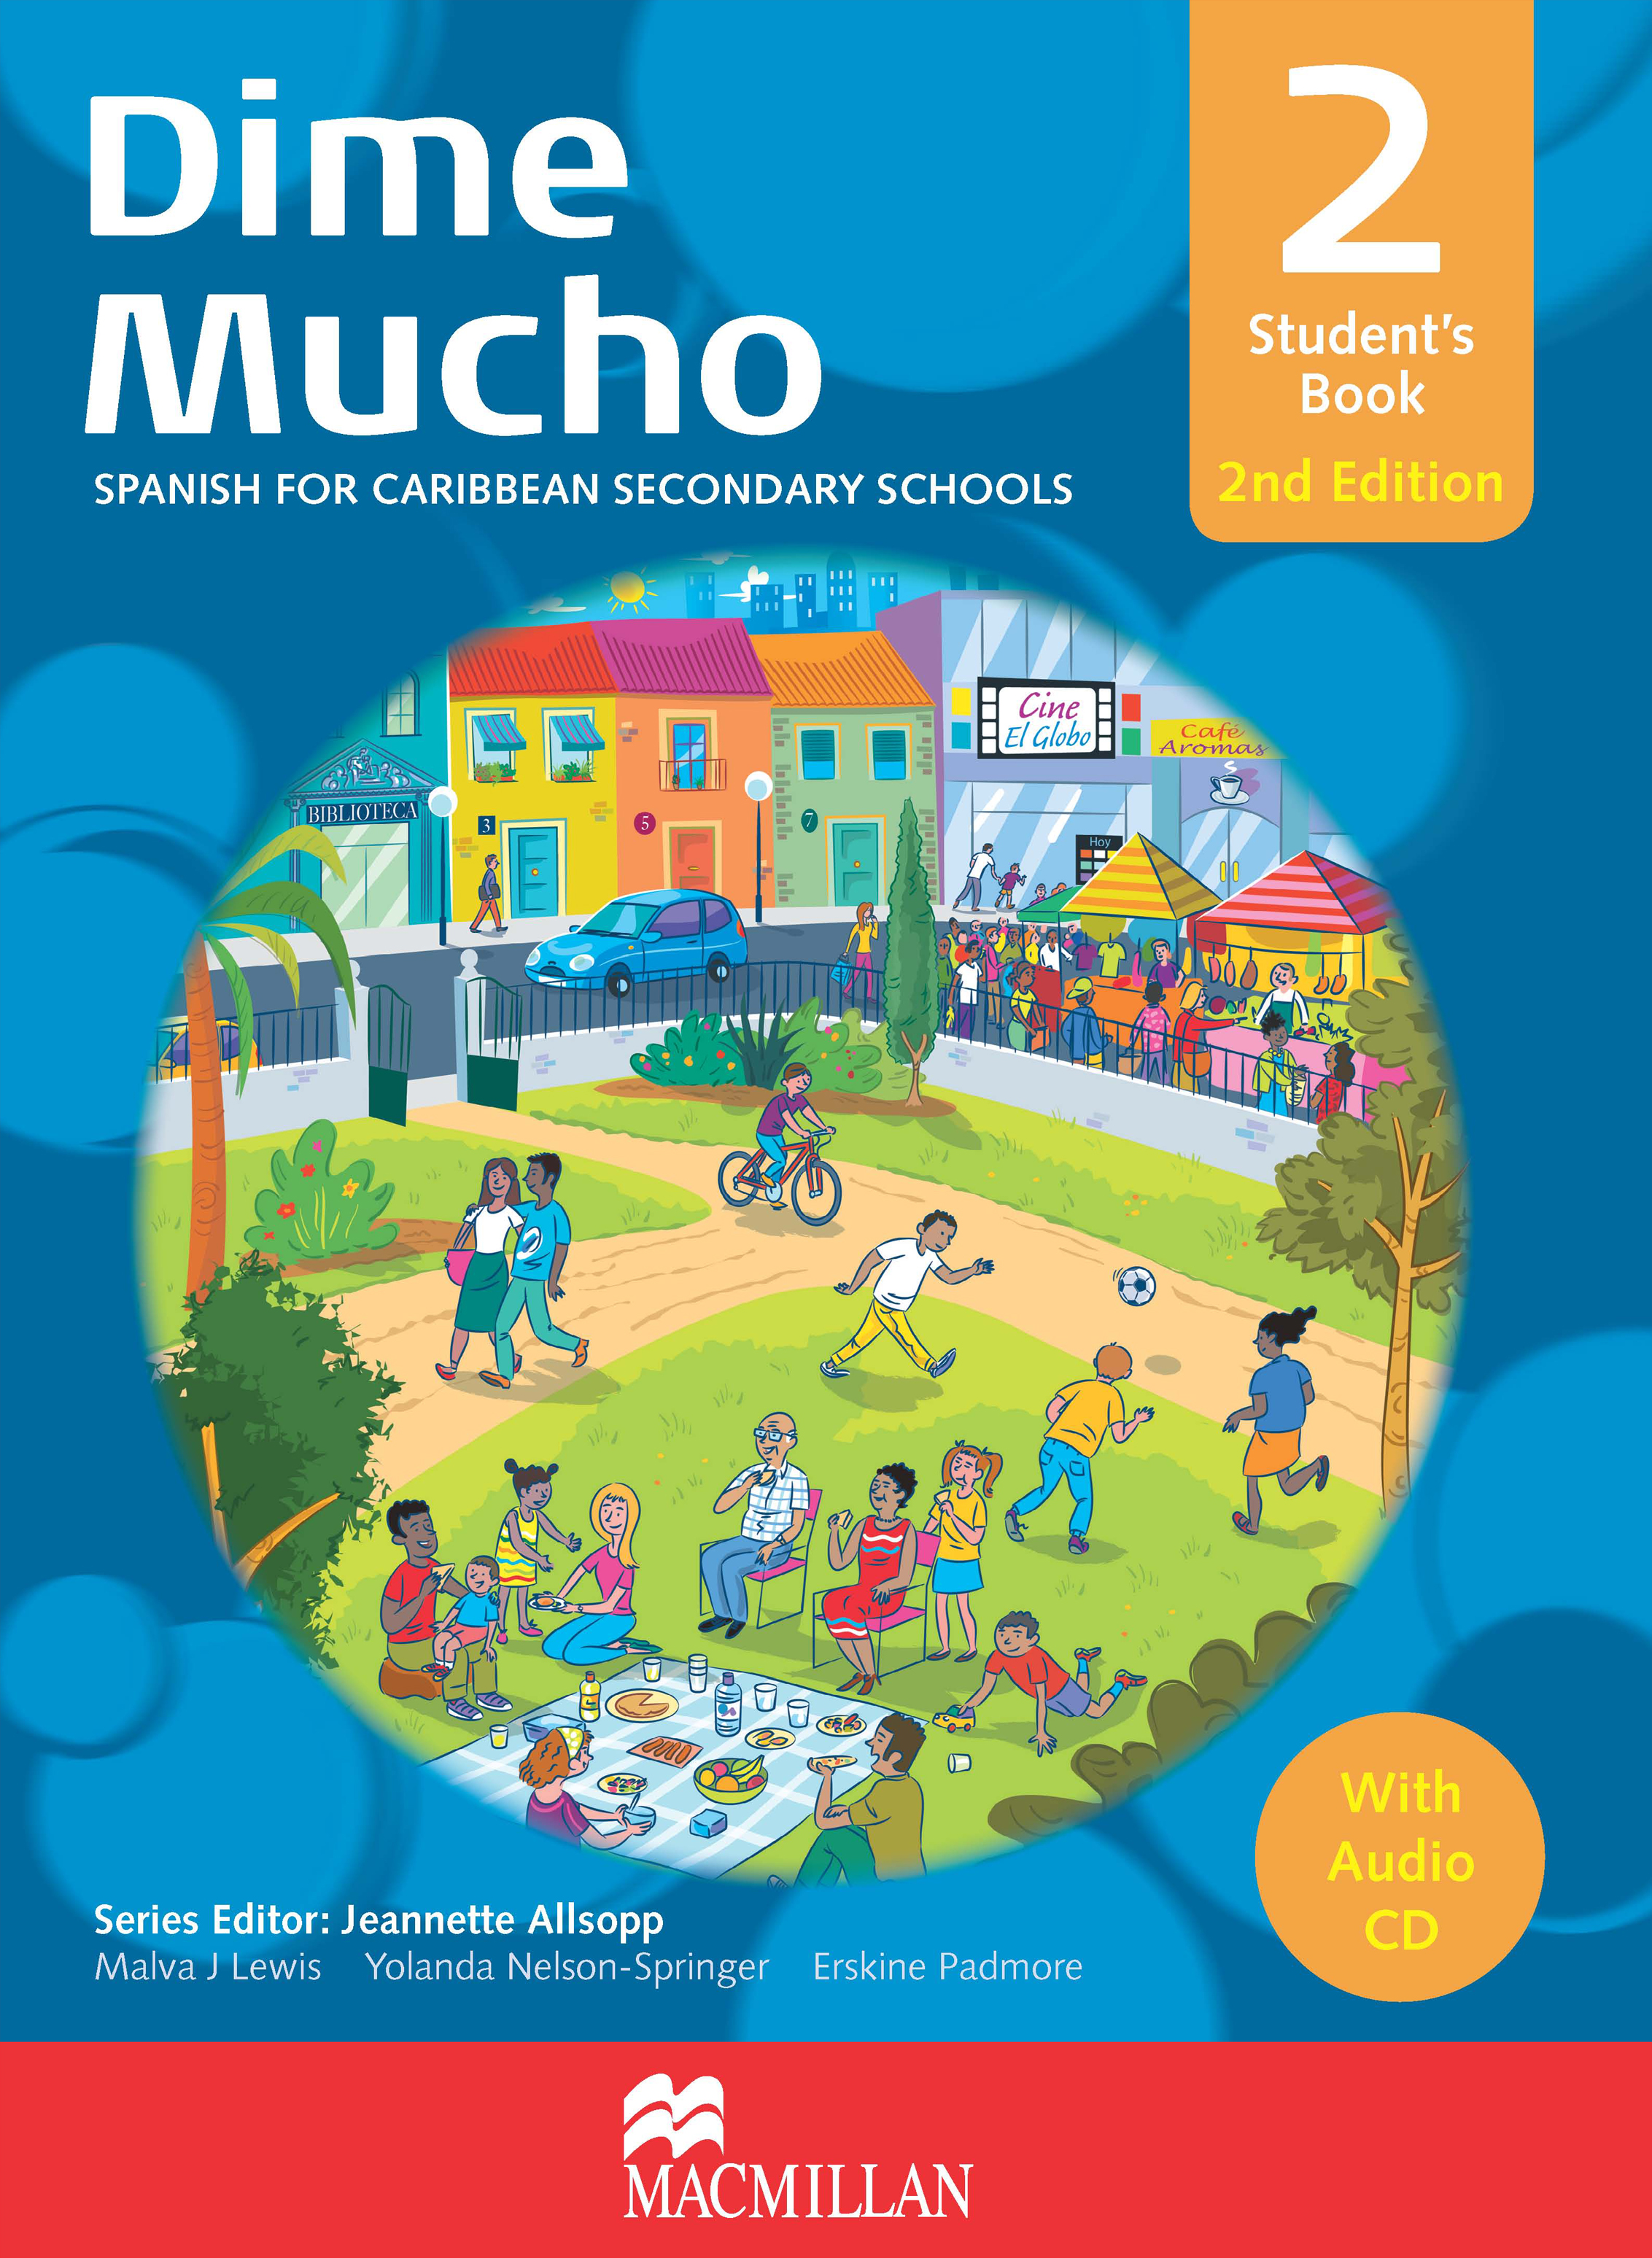 Dime Mucho 2nd Edition Student's Book 2 with Audio CD